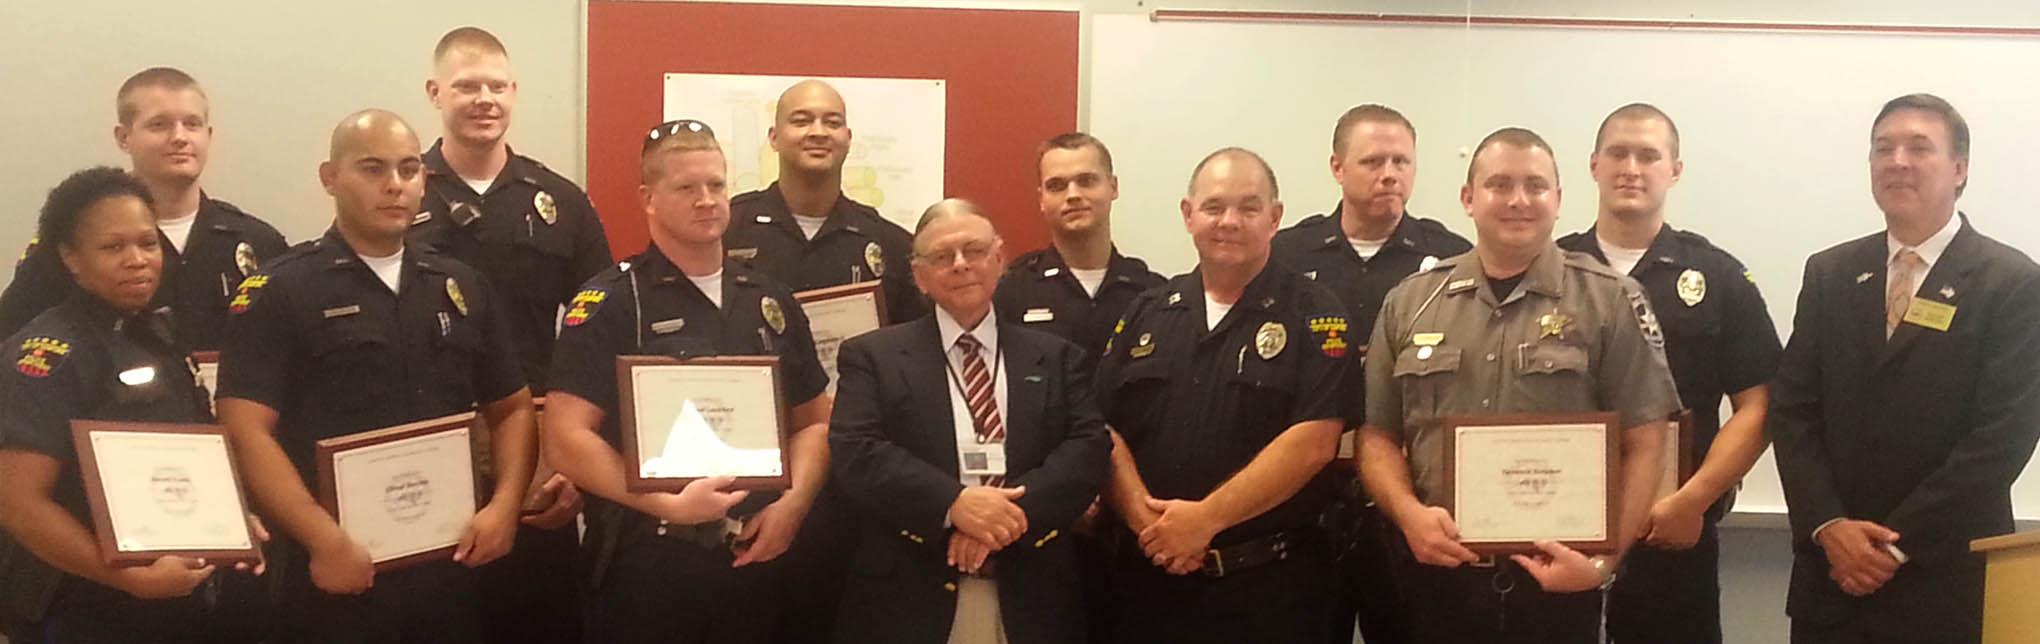 Click to enlarge,  Pictured at the graduation of the Lee County Crisis Intervention Team (CIT) training program are (left to right), front row: Keiomie Evans, Ellmar Benitez, and Michael Lankford, of the Sanford Police Department; Phil Hewett, of Sandhills Center LME/MCO; Captain Tony Hancox, of the Sanford Police Department; Terrance Simpson, of the Lee County Sheriff's Office; and Sanford Mayor Chet Mann; second row, Nickolas Taylor, Matthew Cotton, Alvero I. Leighton II, Greg Parker, William Roland and Kelly Rhyne, of the Sanford Police Department.